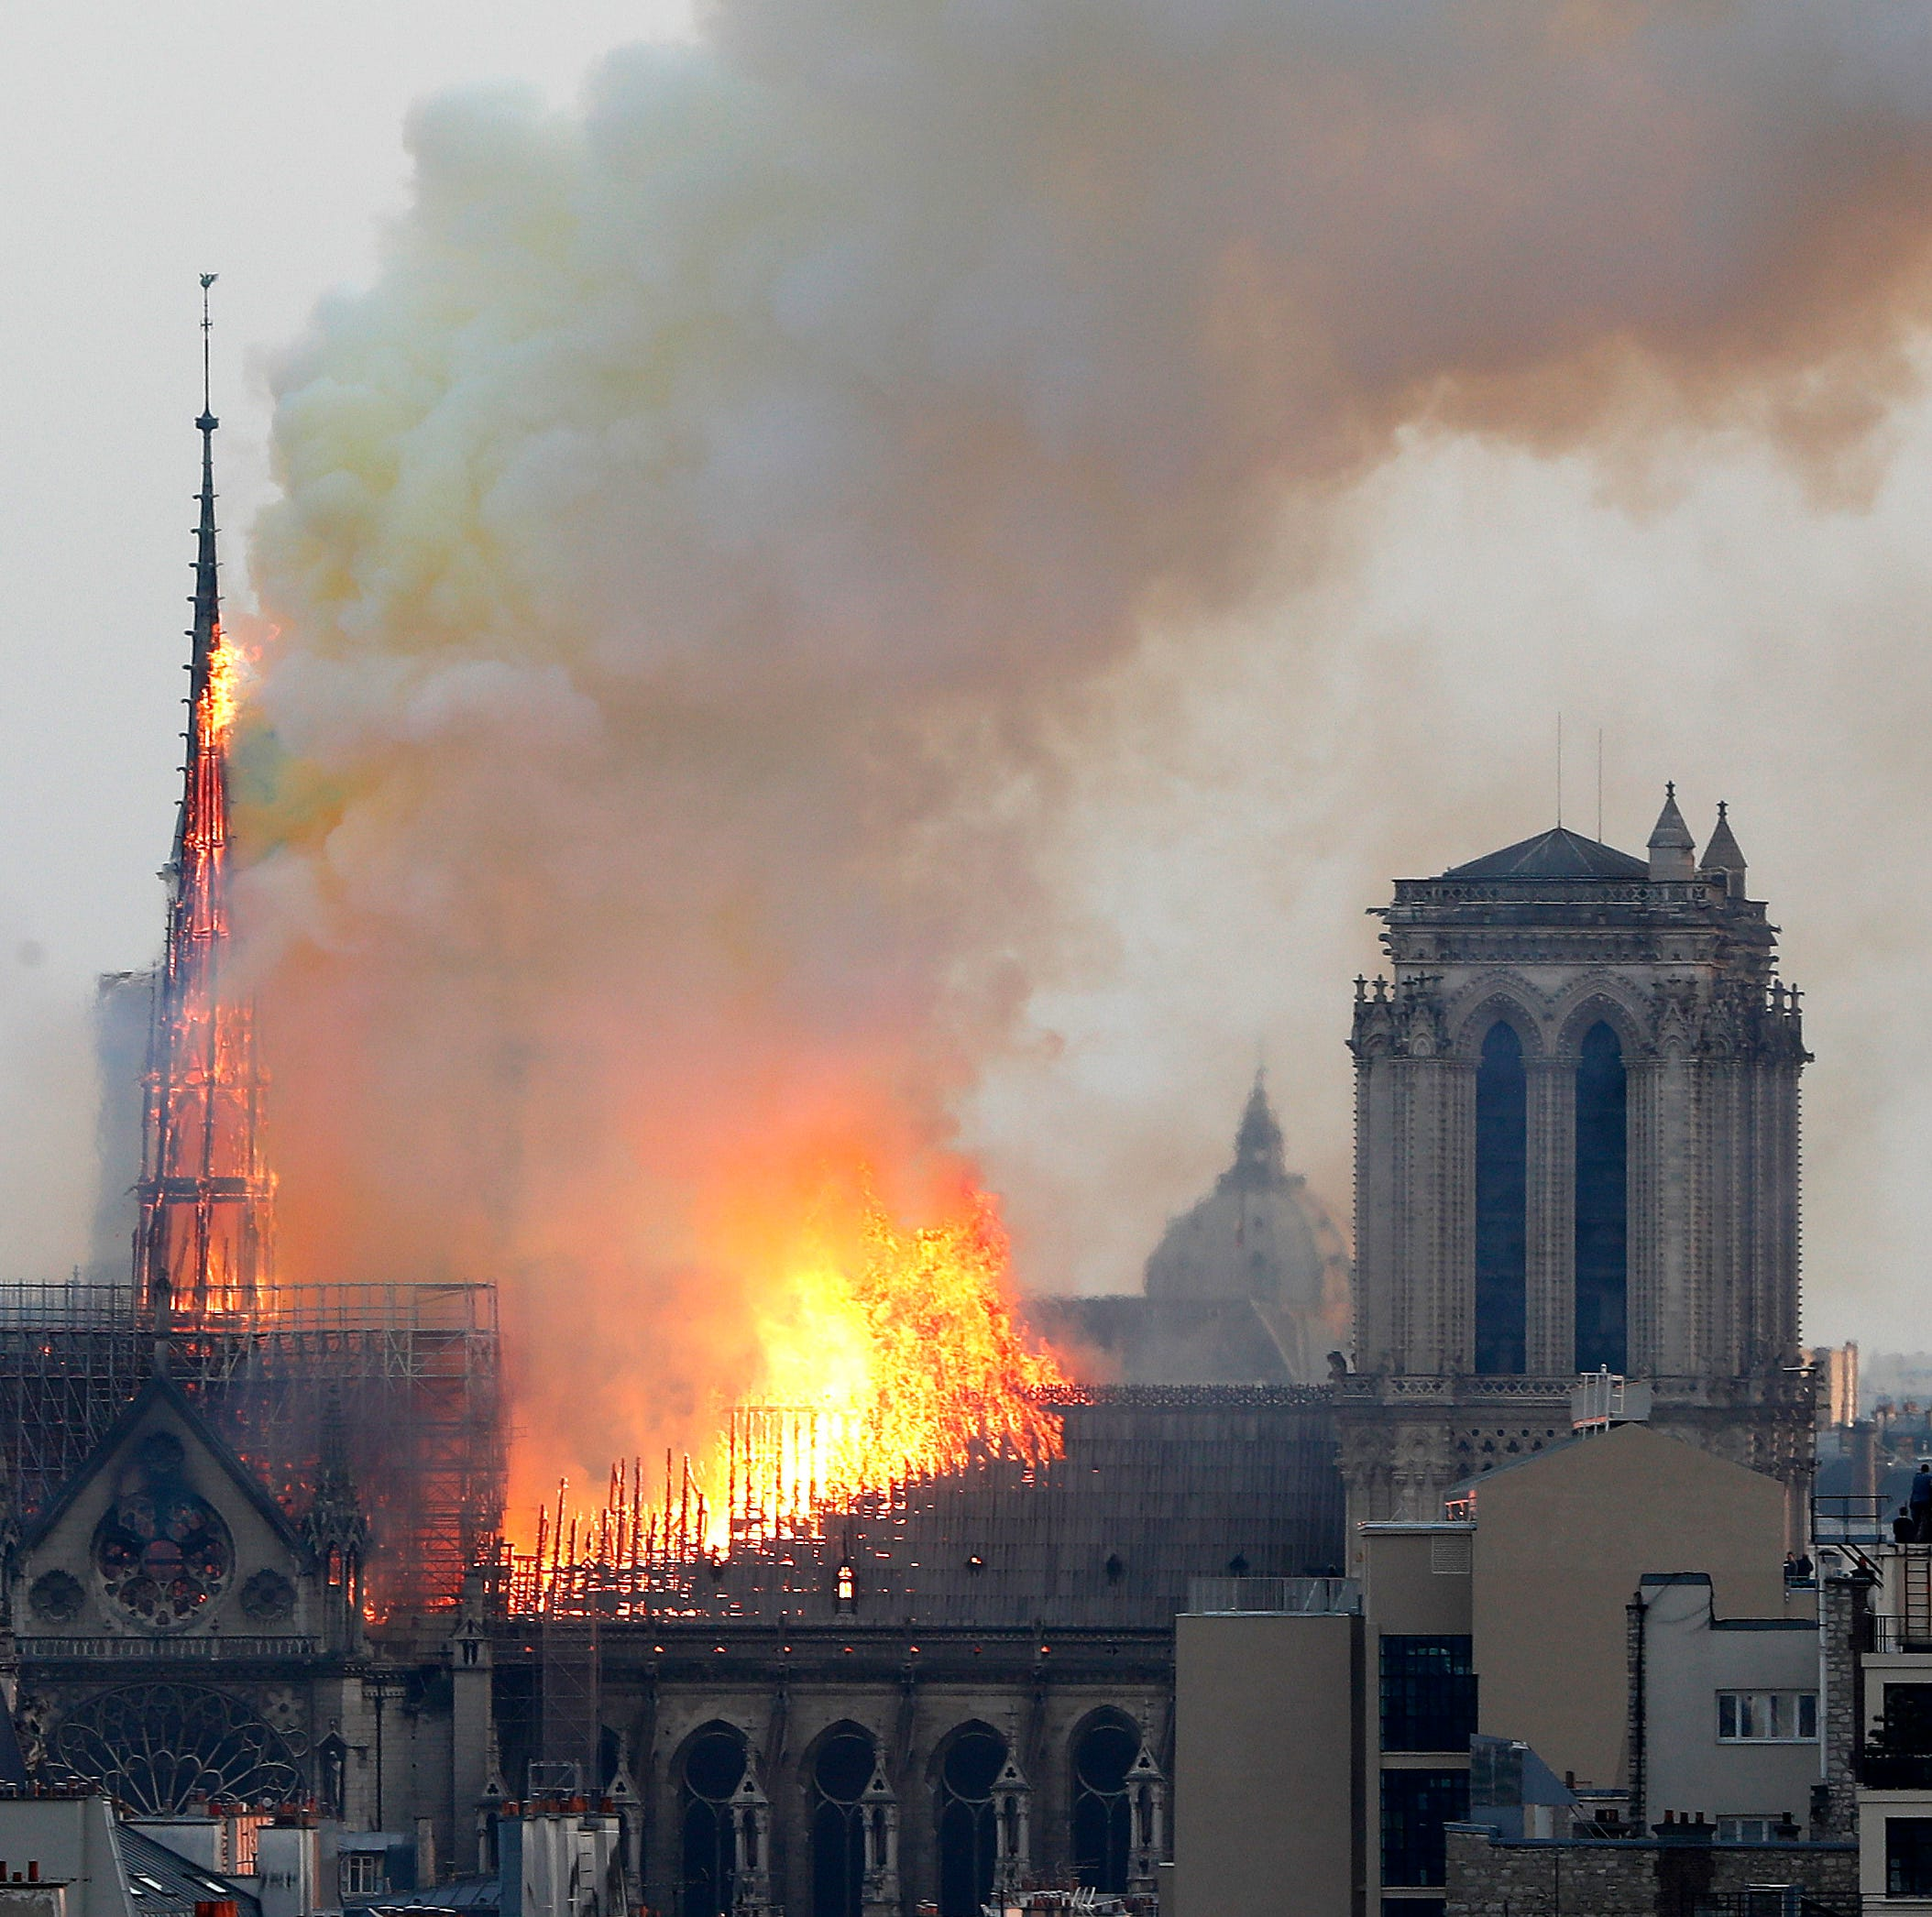 Notre Dame fire: Part of the spire of iconic Cathedral in Paris has collapsed amid a raging fire